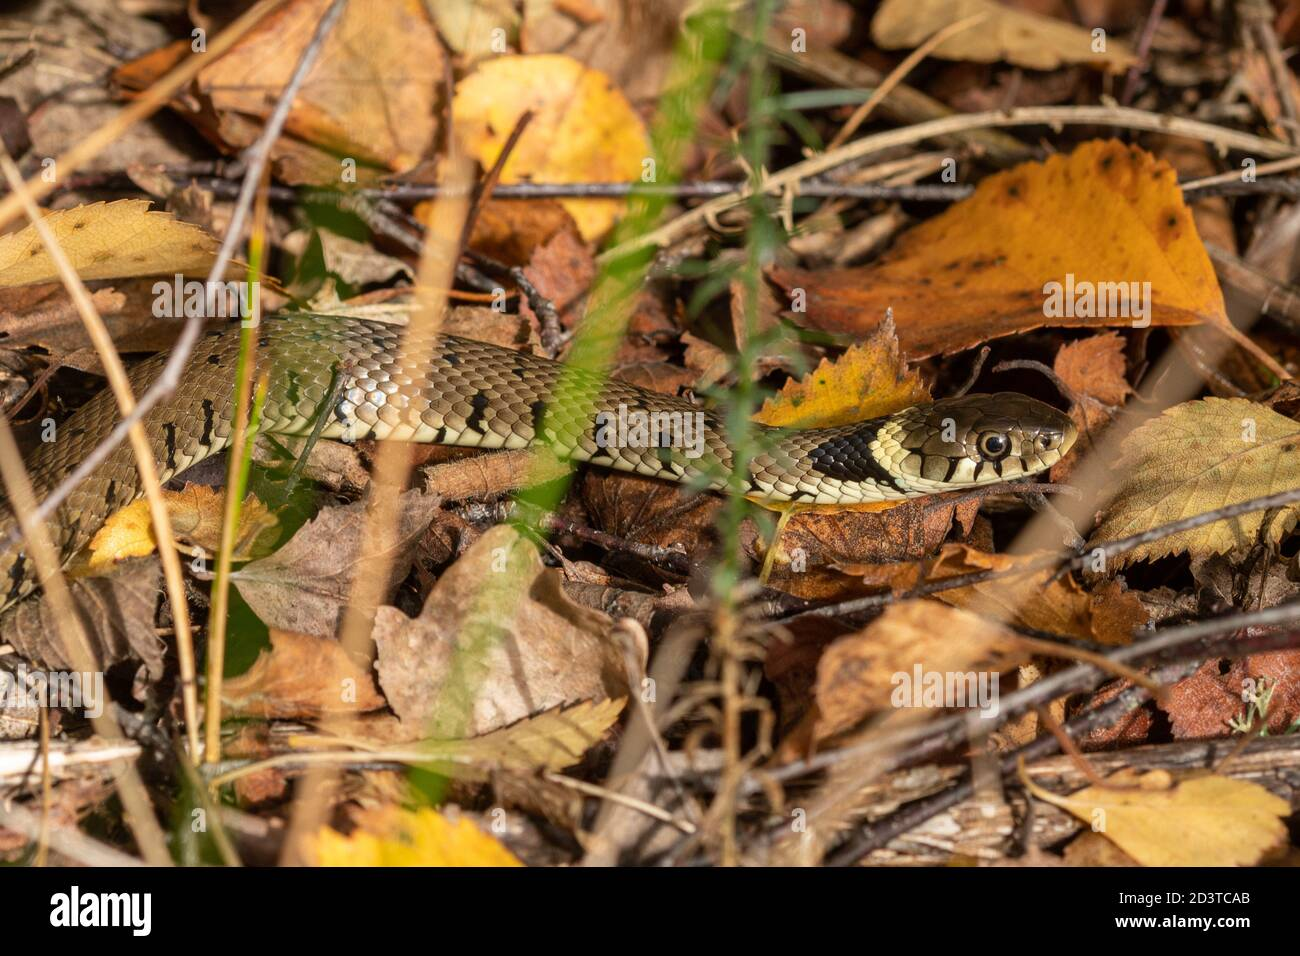 barred-grass-snake-natrix-helvetica-basking-on-autumnal-leaves-in-october-on-a-woodland-edge-uk-during-autumn-2D3TCAB.jpg